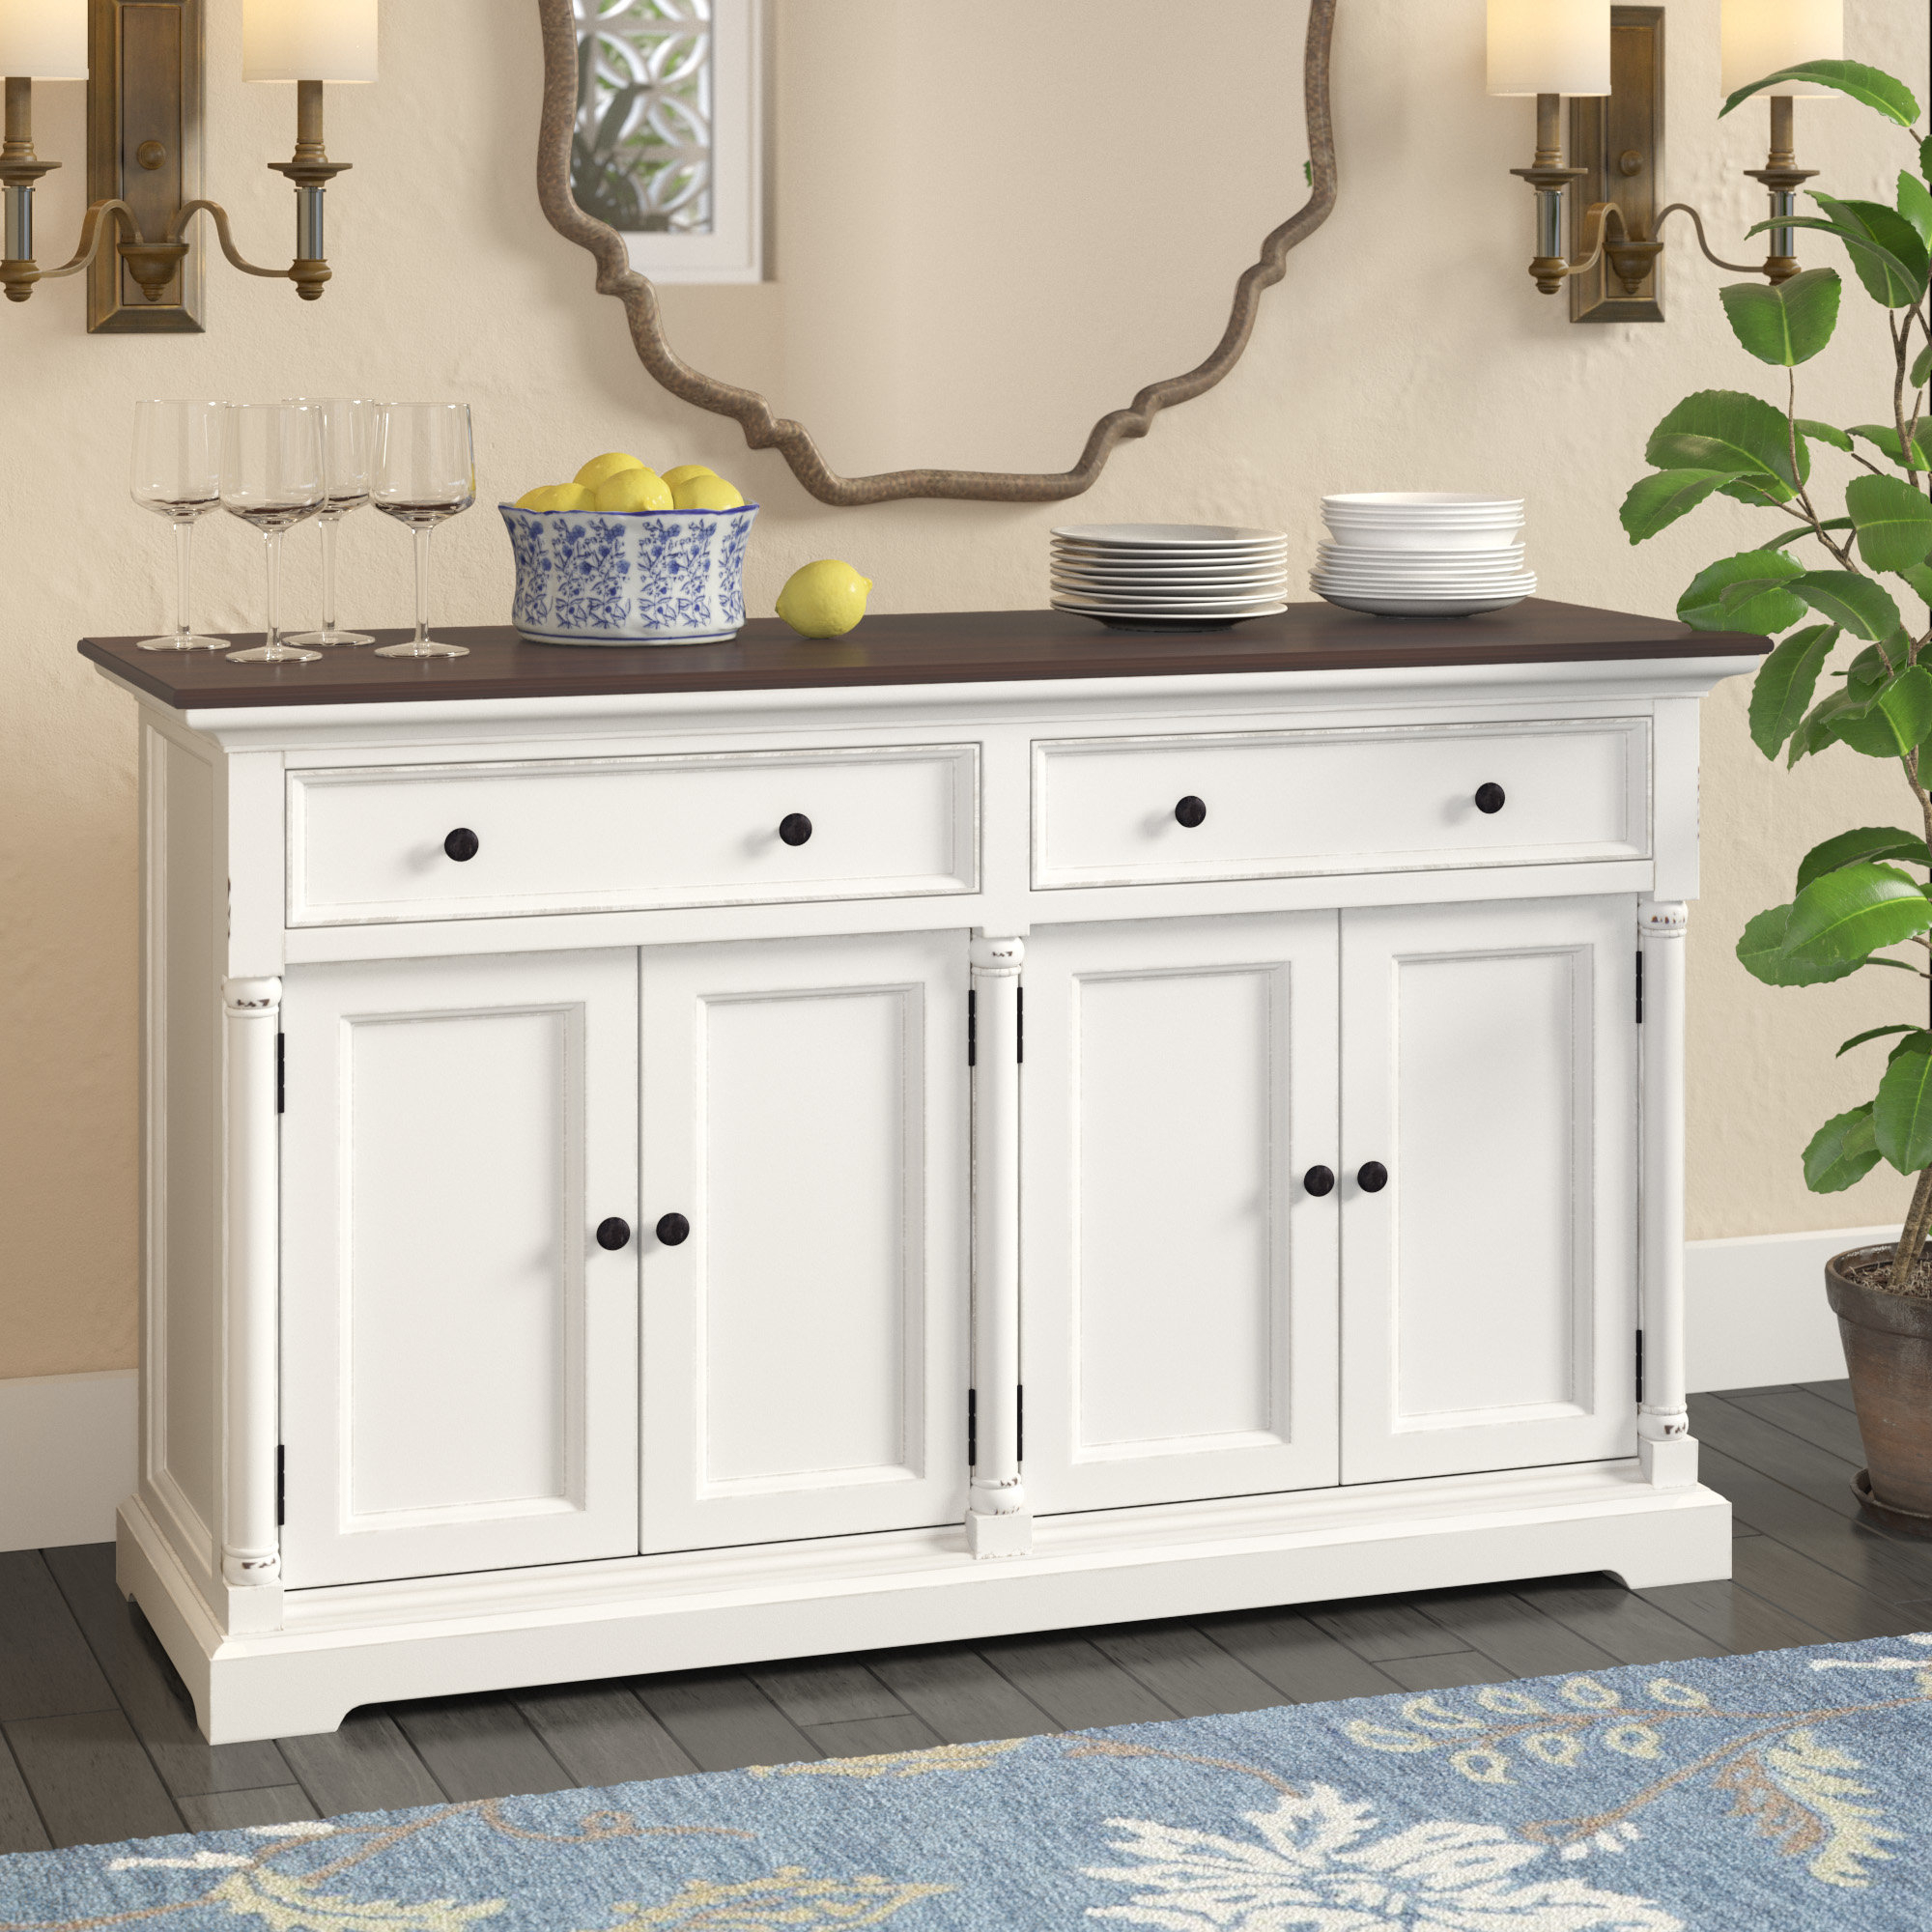 Westmont Sideboard With Regard To Latest Pineville Dining Sideboards (Gallery 8 of 20)